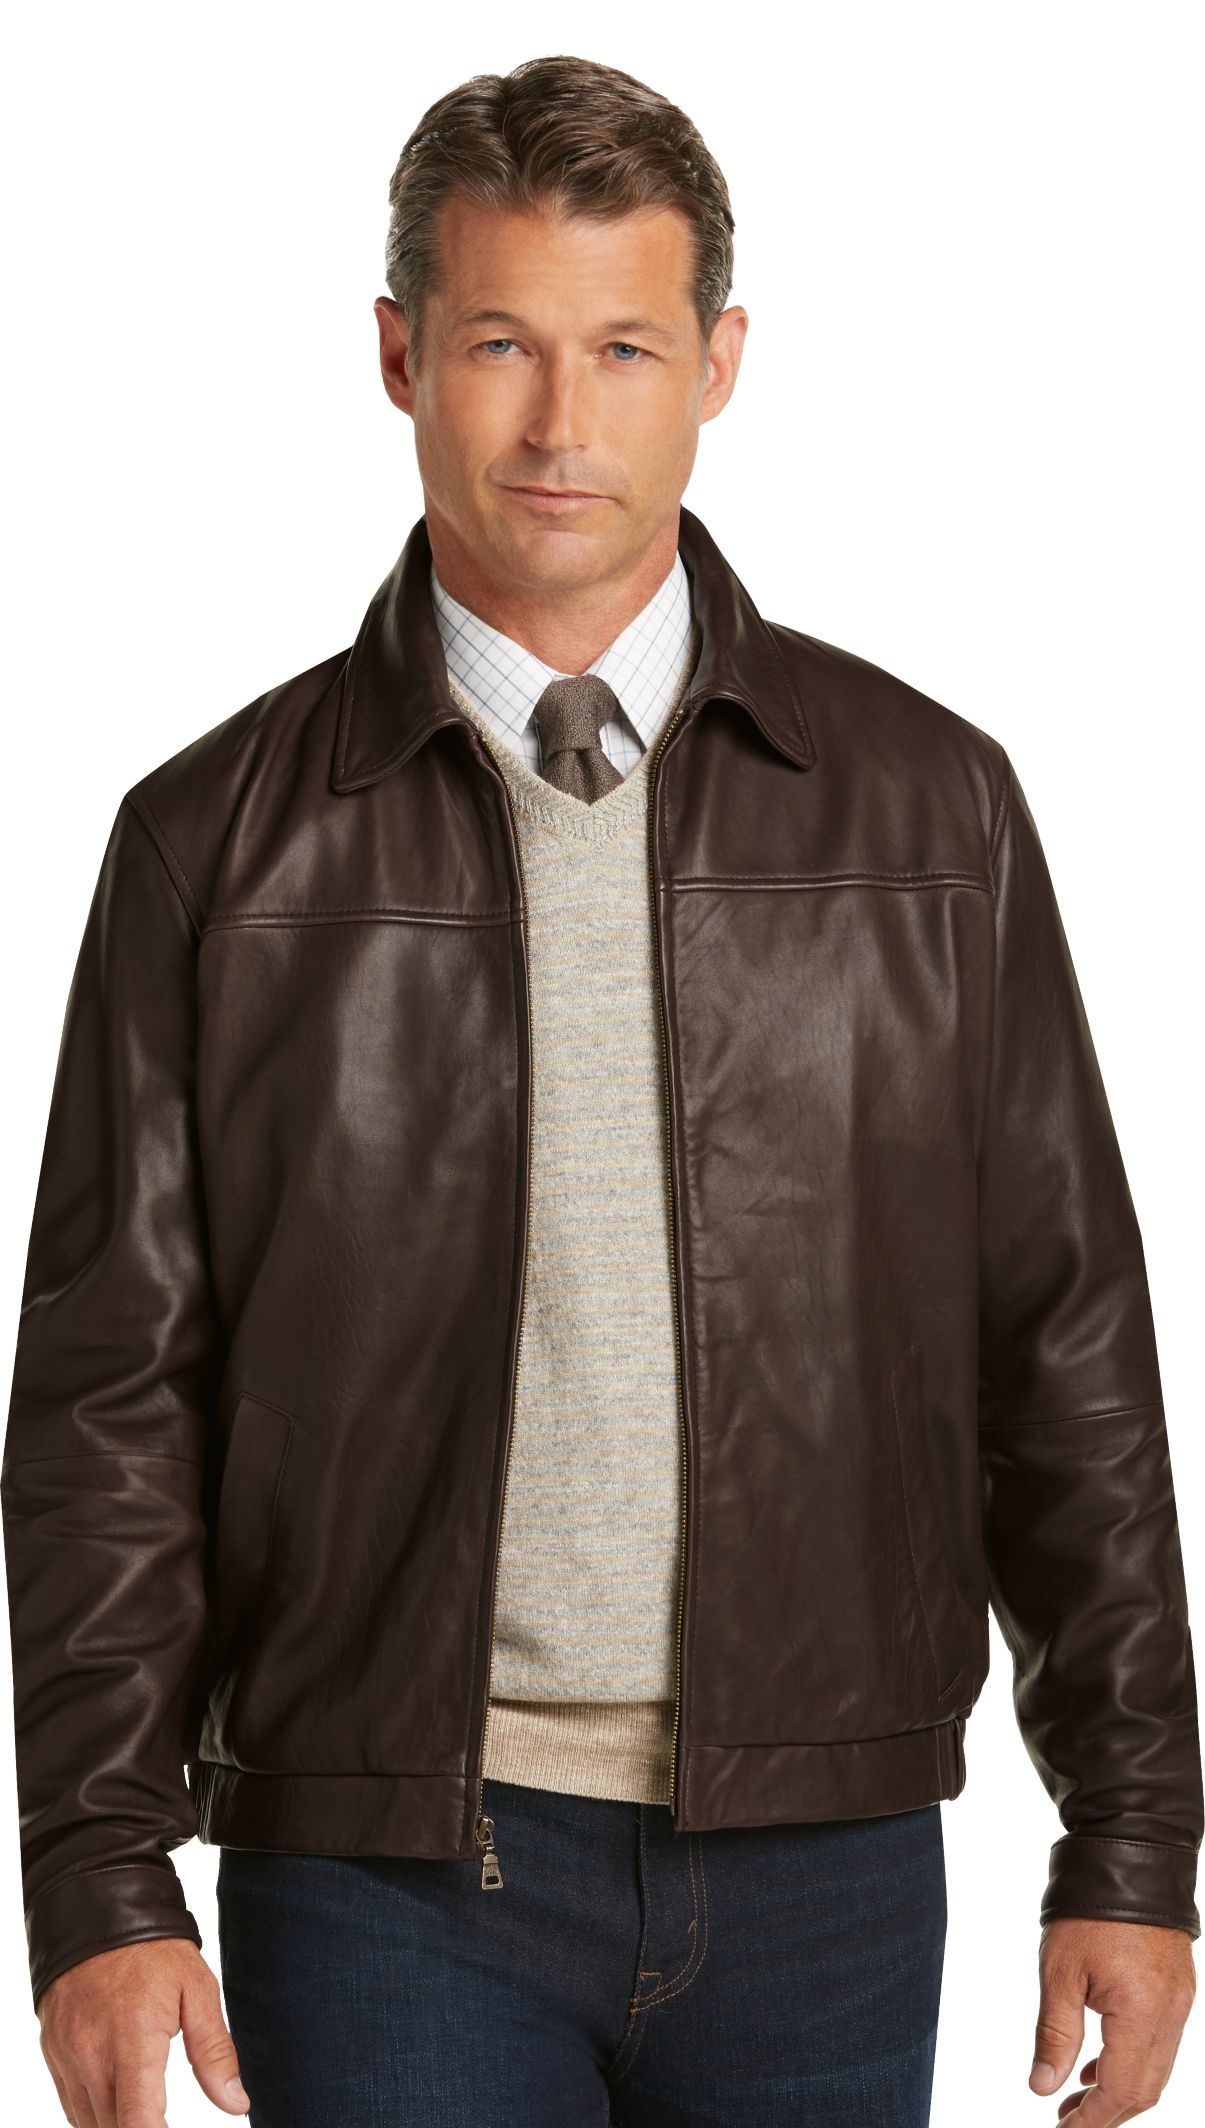 Men&39s Leather Jackets &amp Bomber Jackets | Men&39s Outerwear | JoS. A